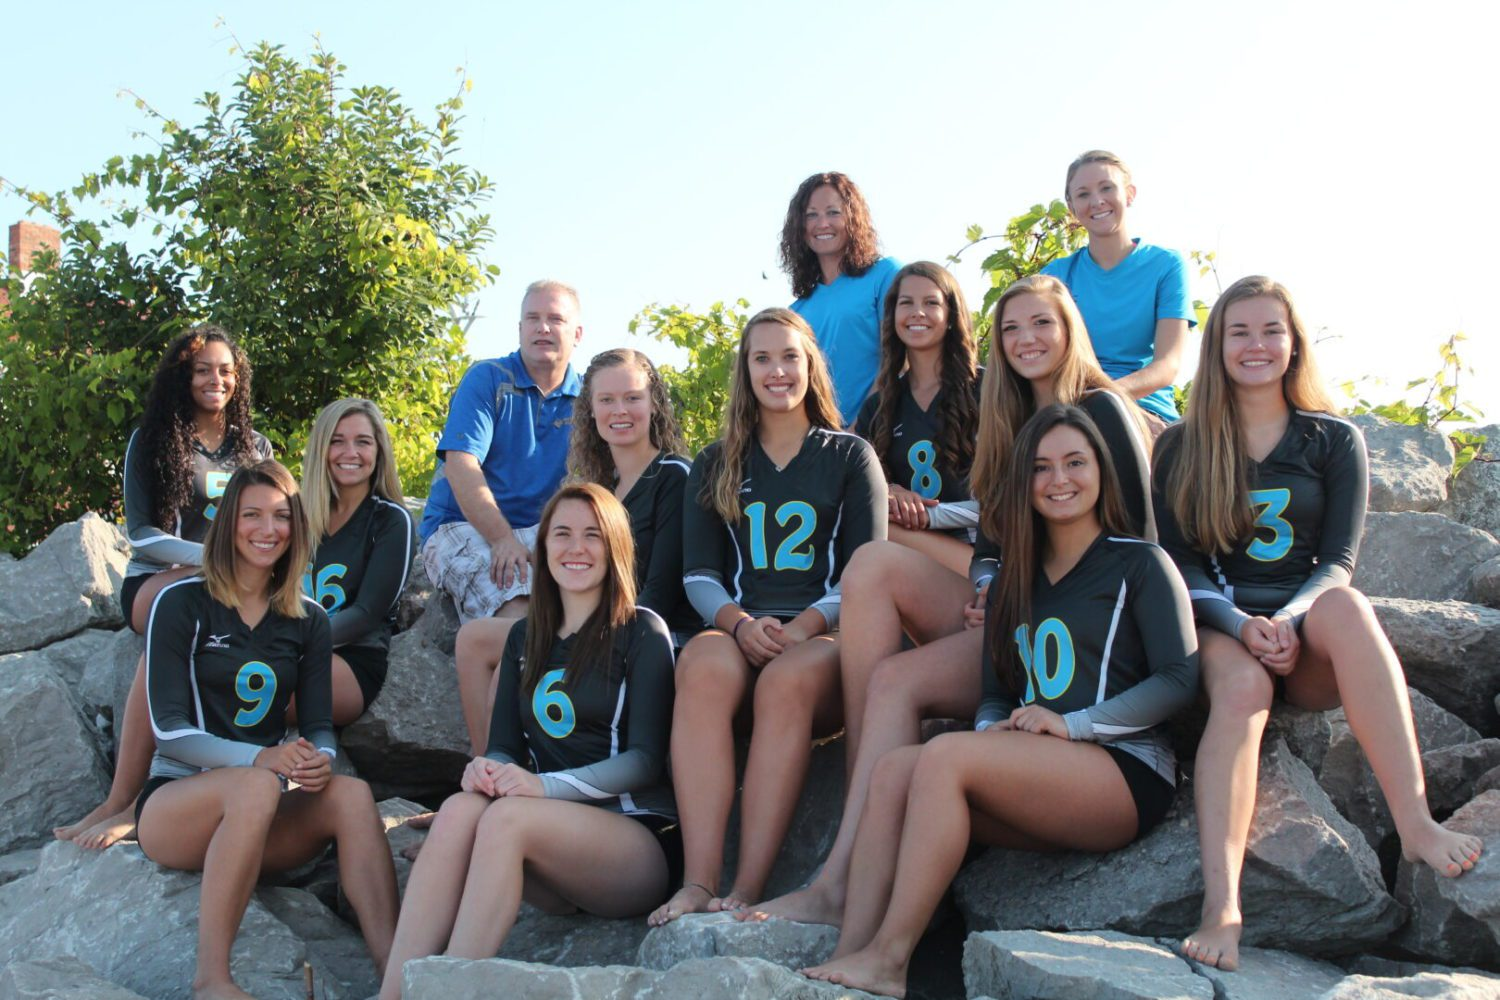 Jayhawk volleyball team remains in contention for another league title after a slow start this season